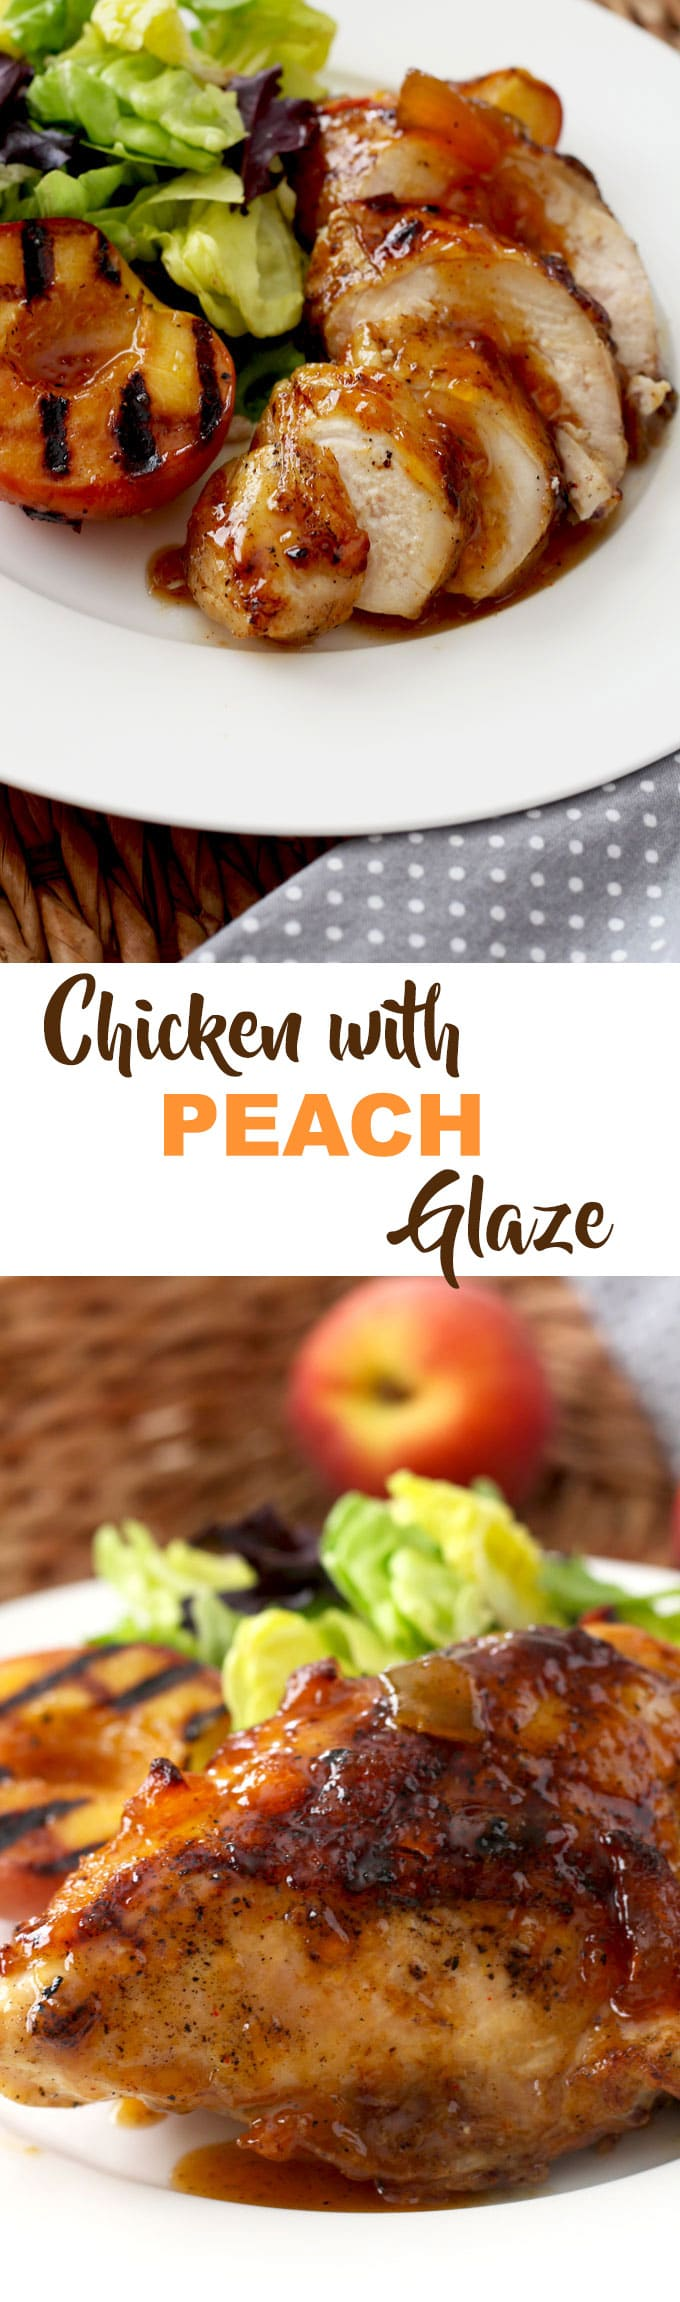 This Sticky Chicken with Peach Glaze and Grilled Peaches is sweet and spicy, so easy to make and beyond finger licking good!This Sticky Chicken recipe is the perfect summer dish to serve at your next gathering, backyard BBQ or potluck. #grilledchicken #peachglaze #grilling #peaches